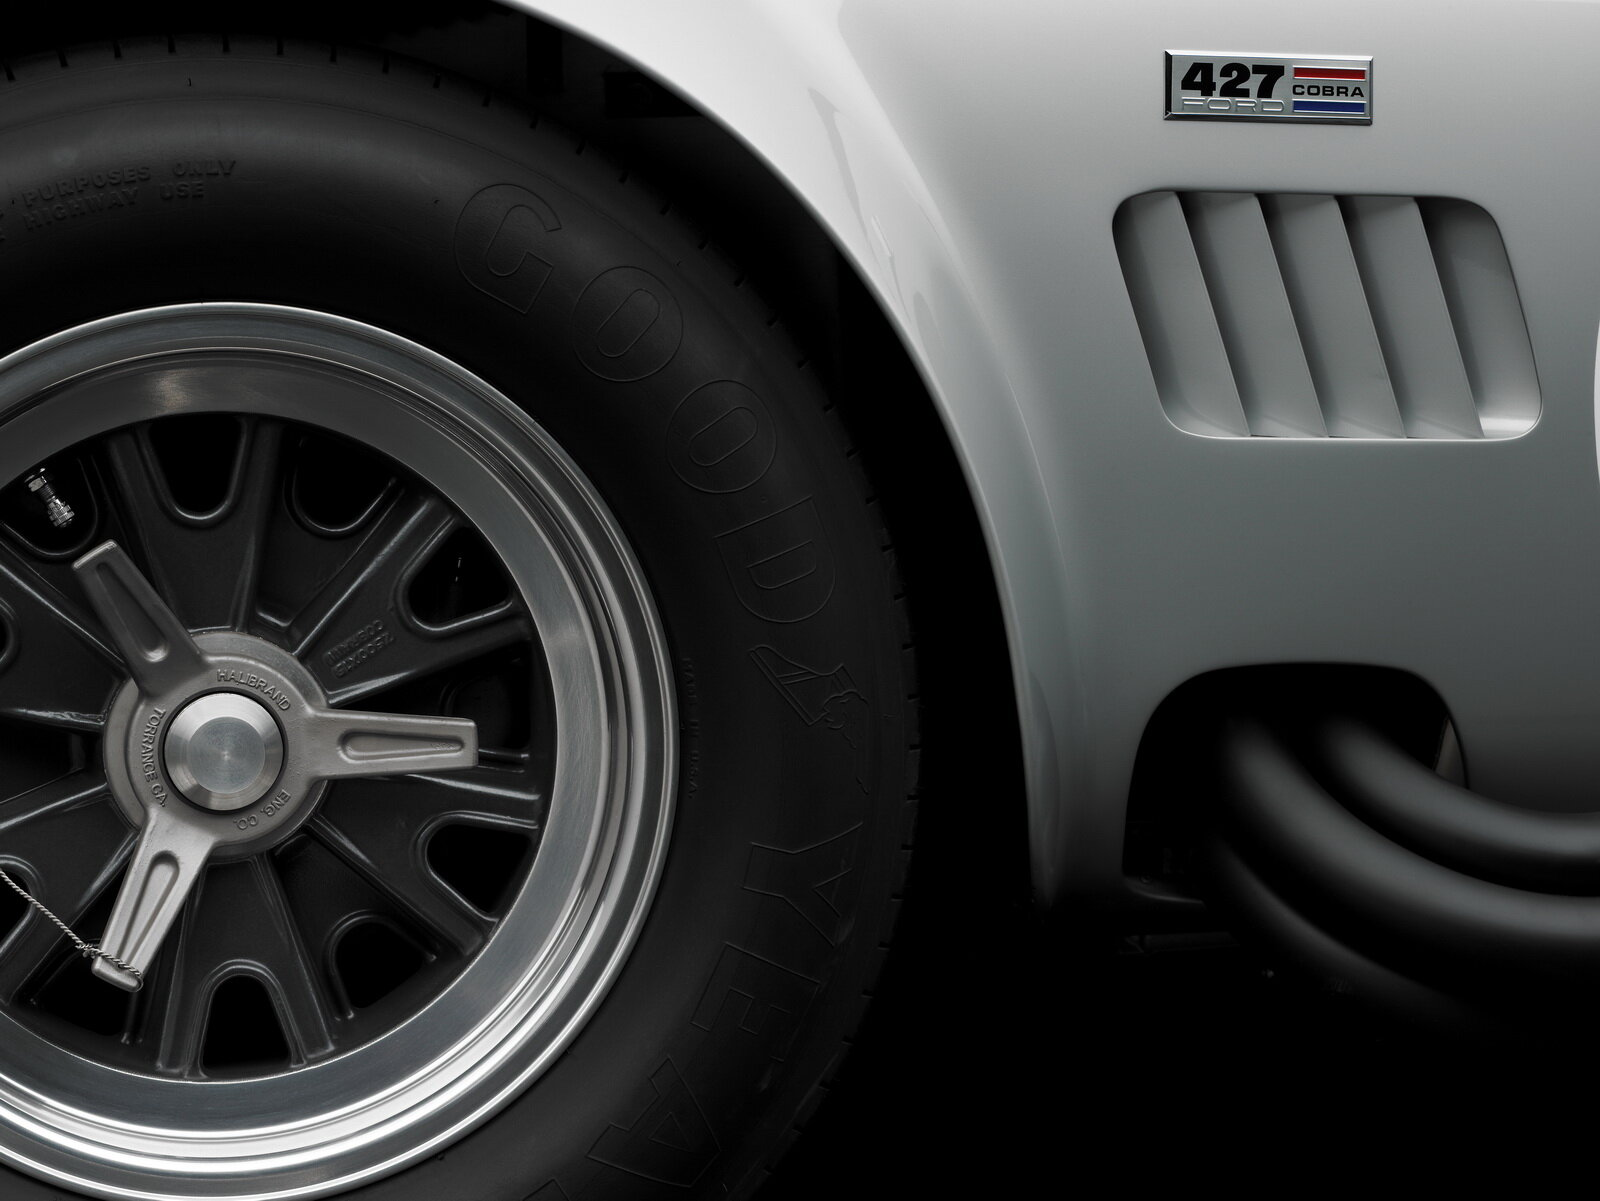 shelby-cobra-427-is-up-for-sale_100638131_h.jpg